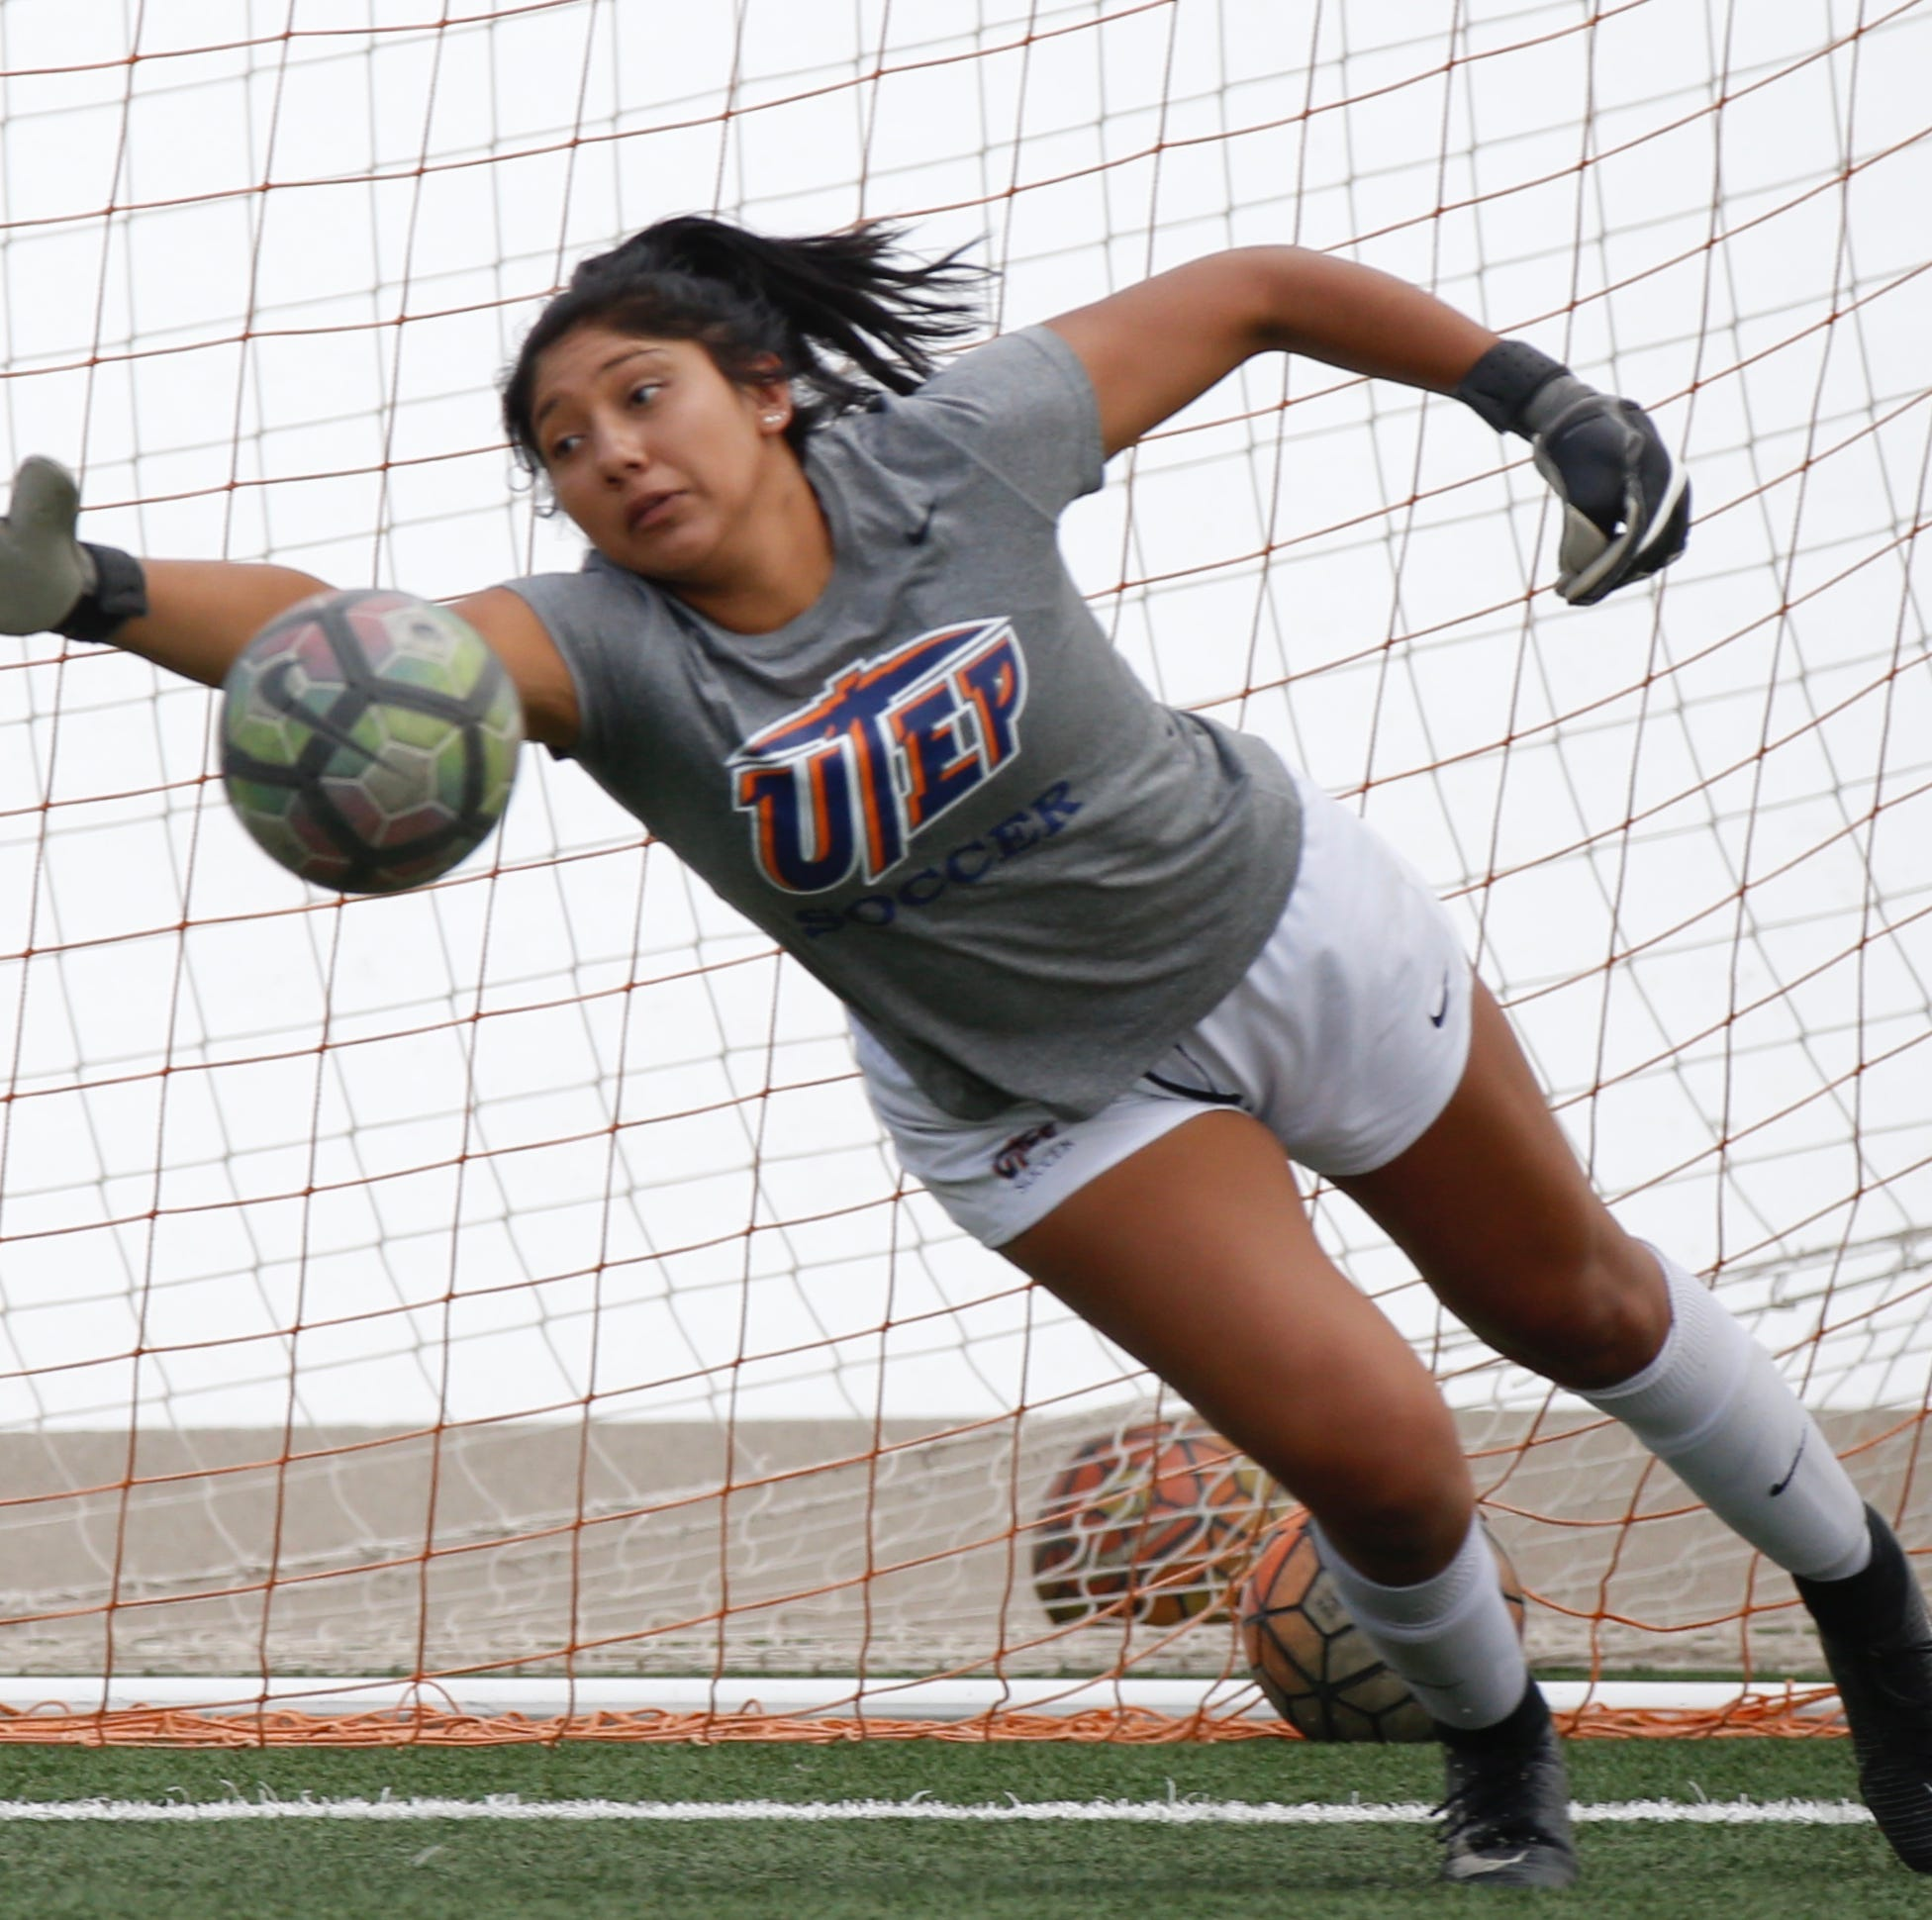 UTEP soccer goalkeeper Alyssa Palacios plays through back pain, medical procedures